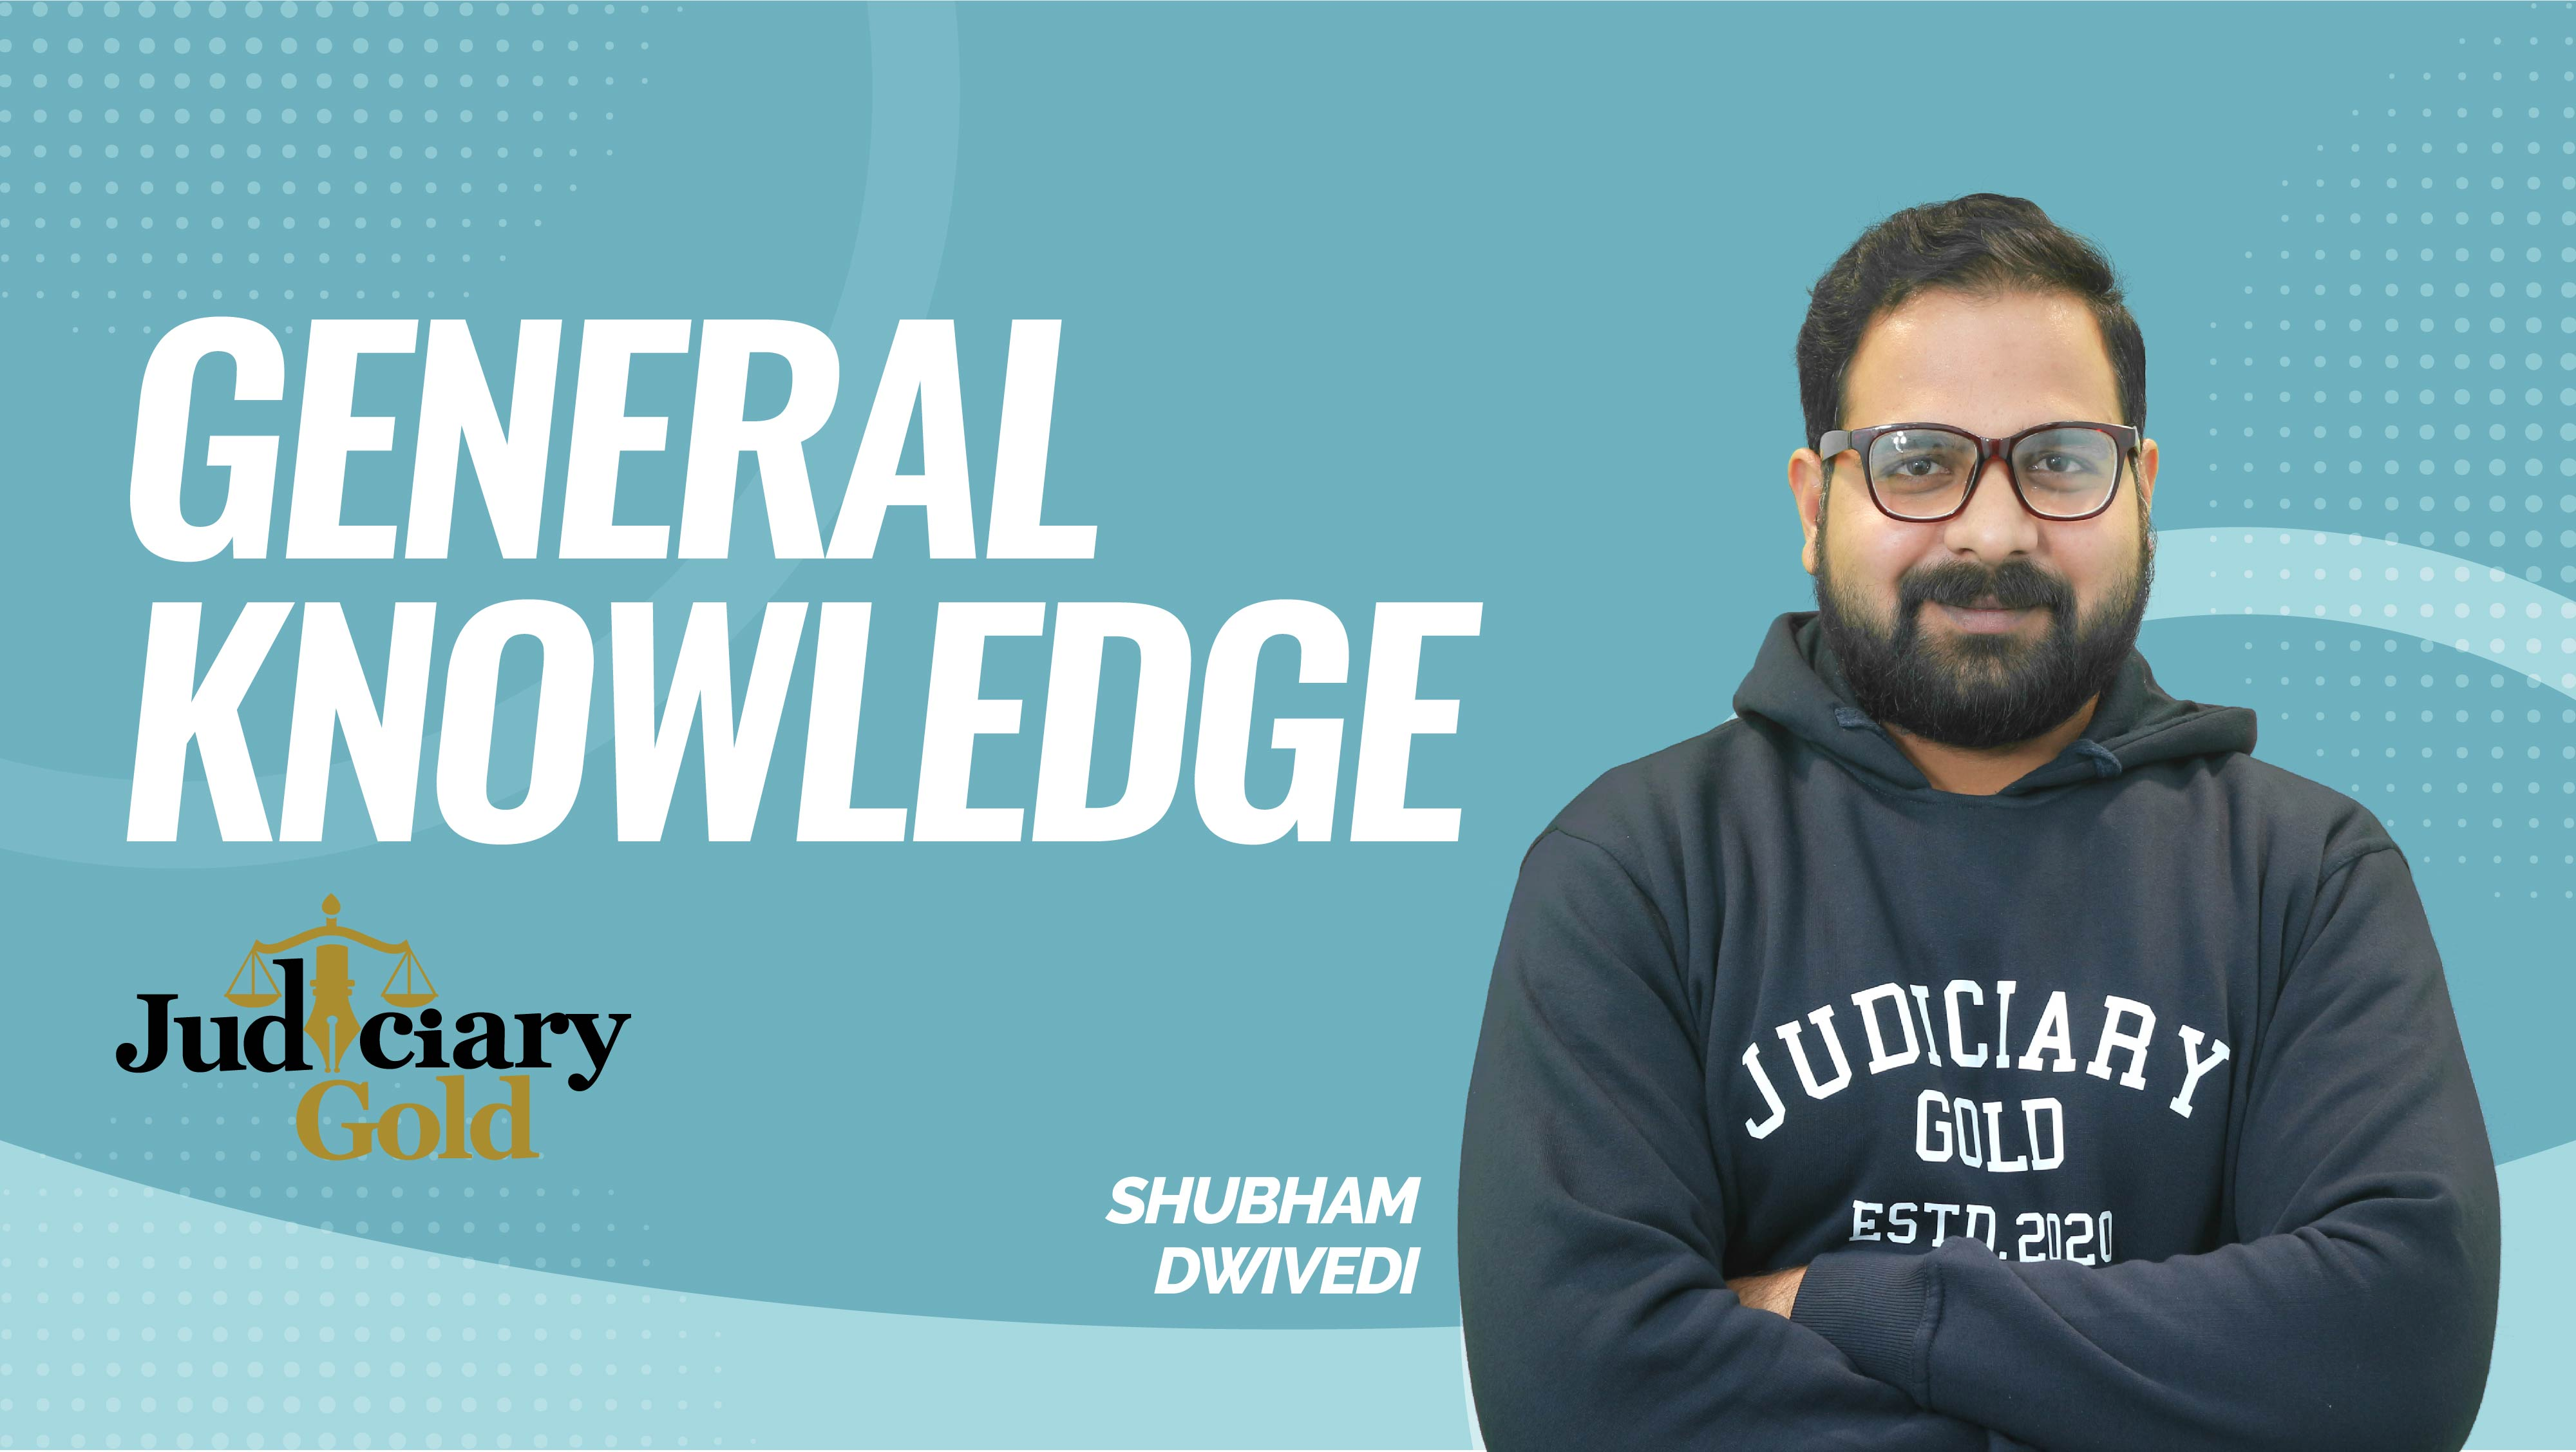 Judiciary Gold | General Knowledge | CA 28 August | By Shubham Dwivedi Sir